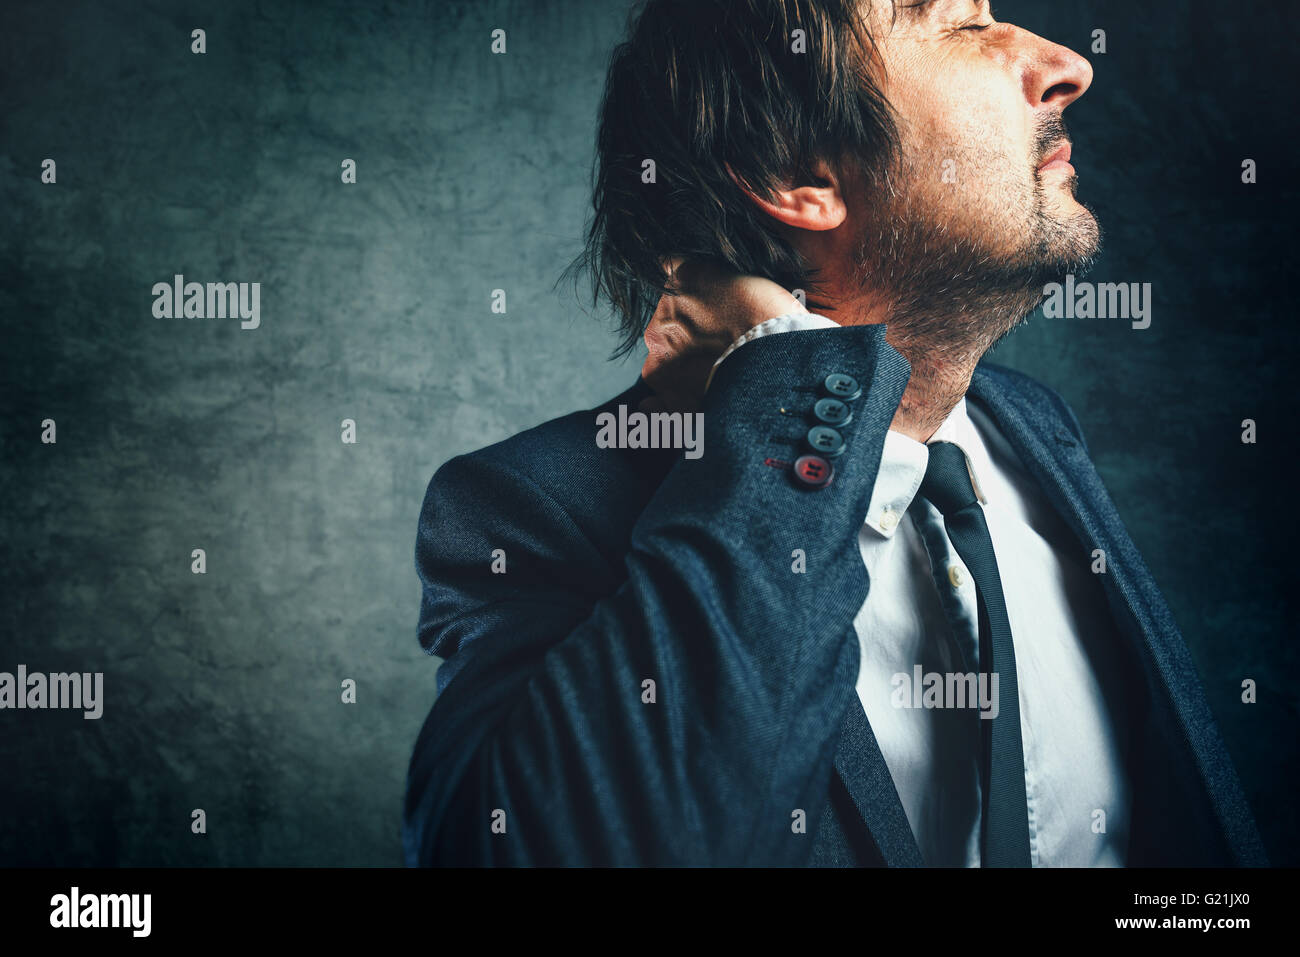 Pain in the neck of a businessman, stressed businessperson in elegant suit suffering from neckache. - Stock Image